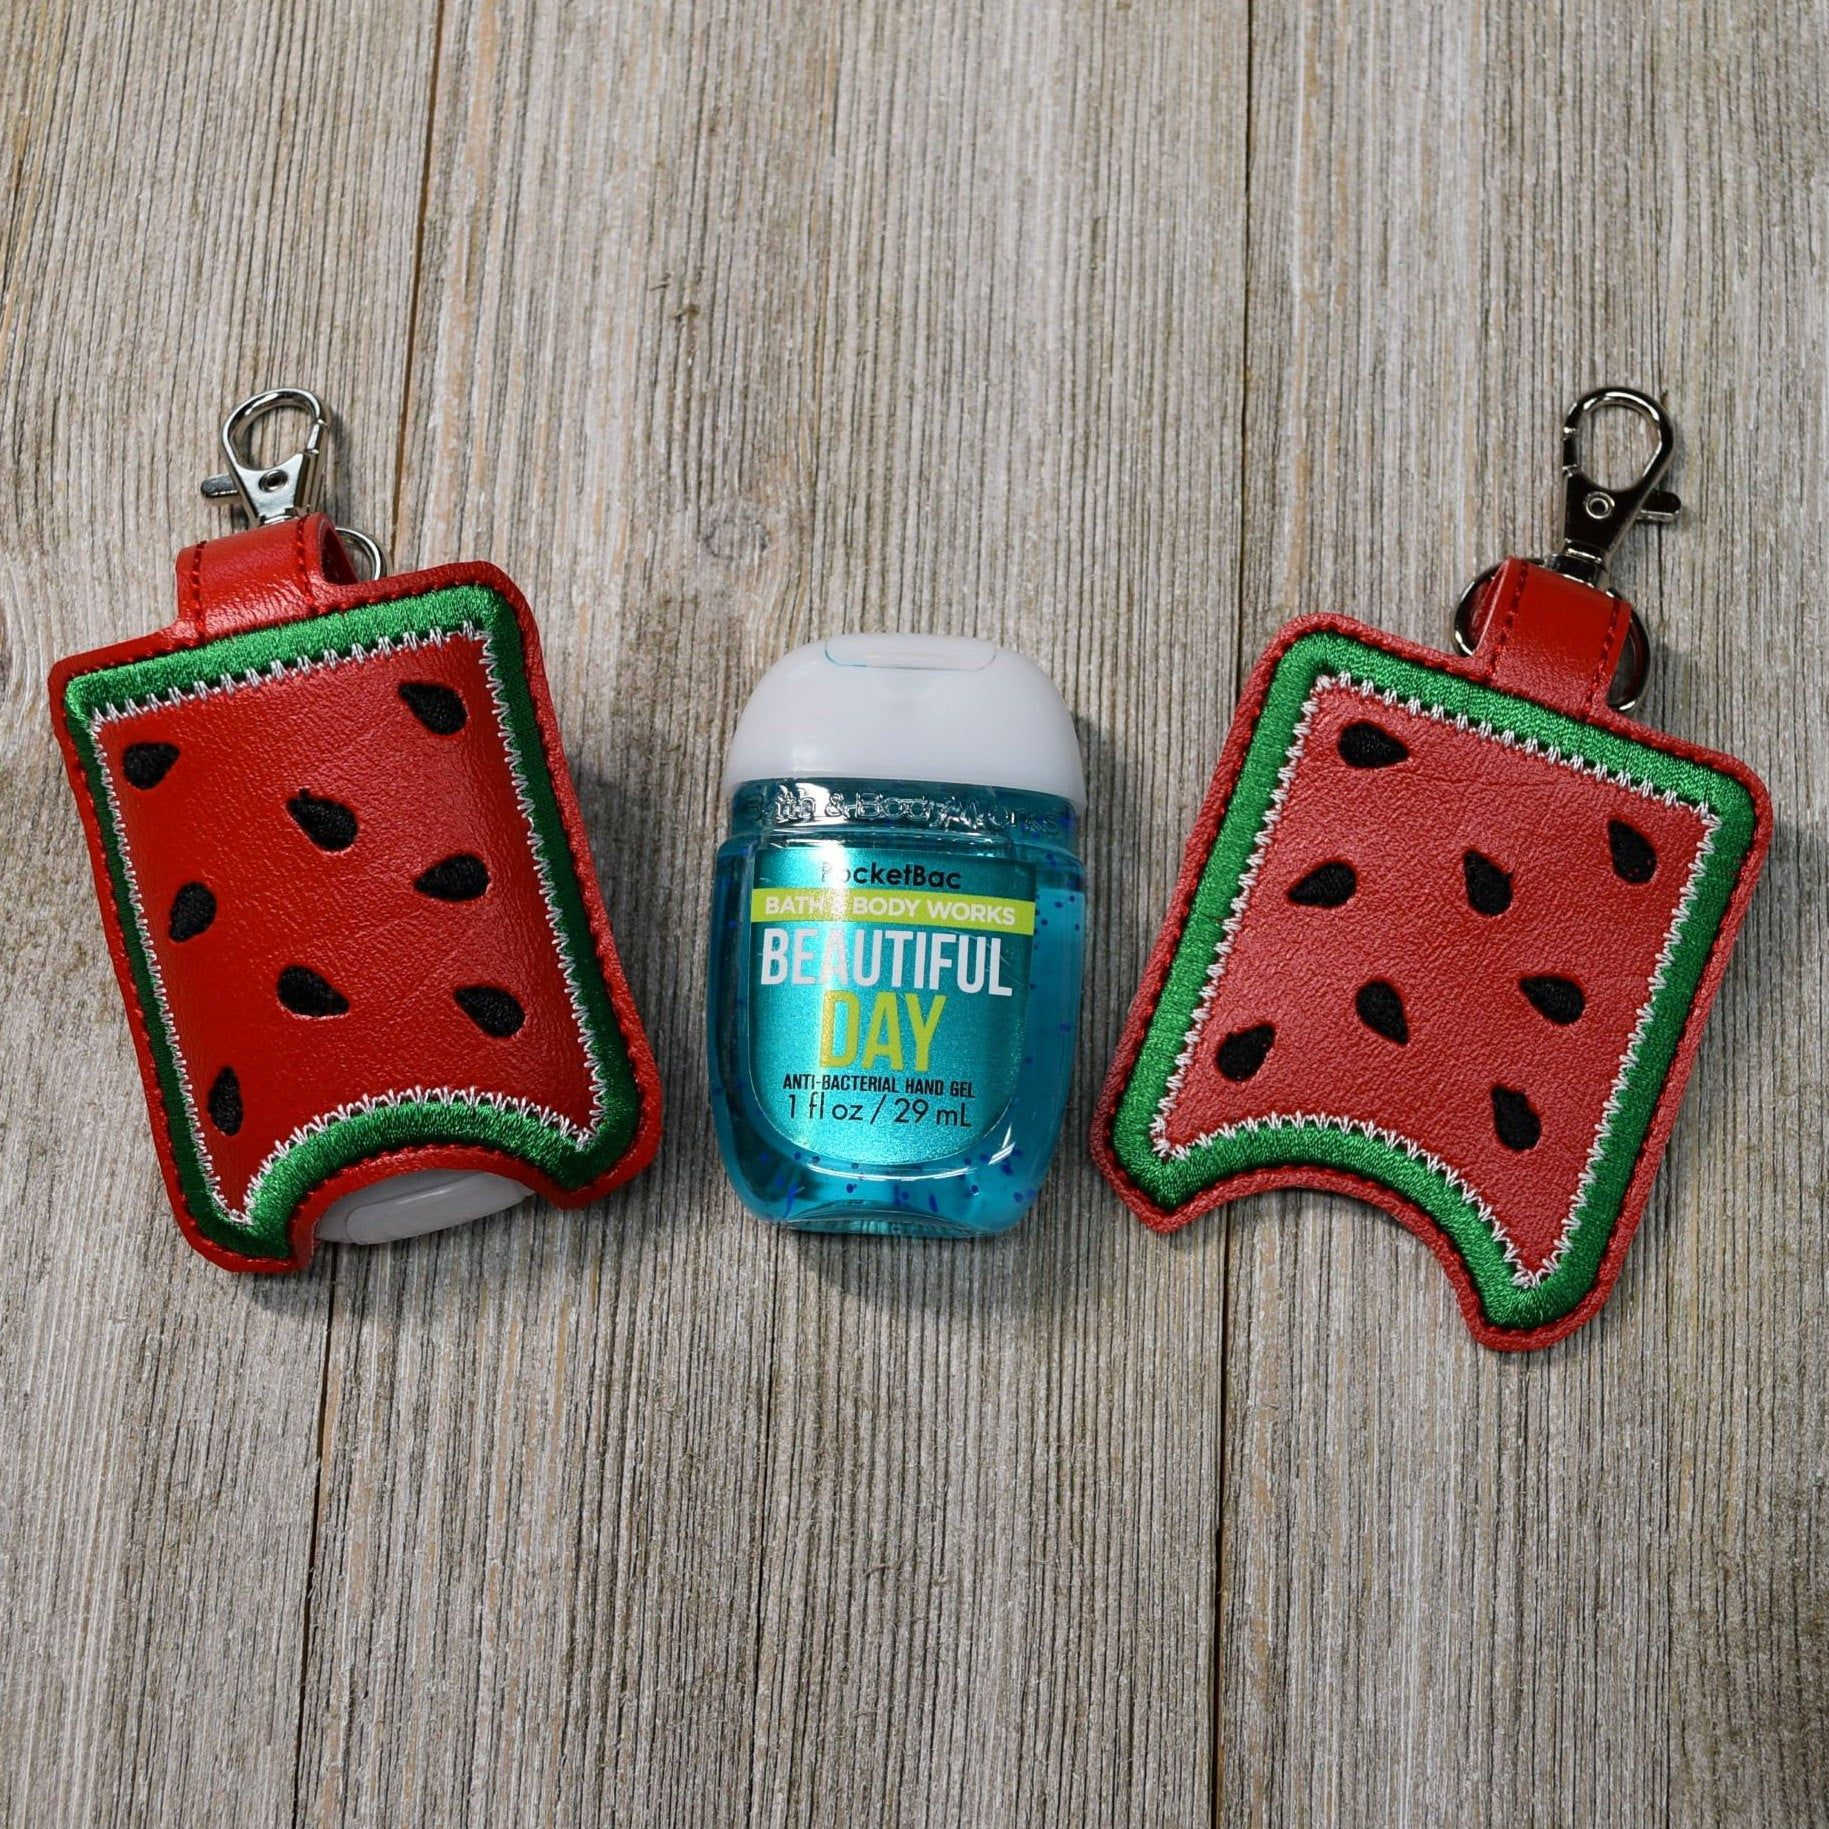 Hand Sanitizer Holder Watermelon Sanitizer Keychain Pocketbac